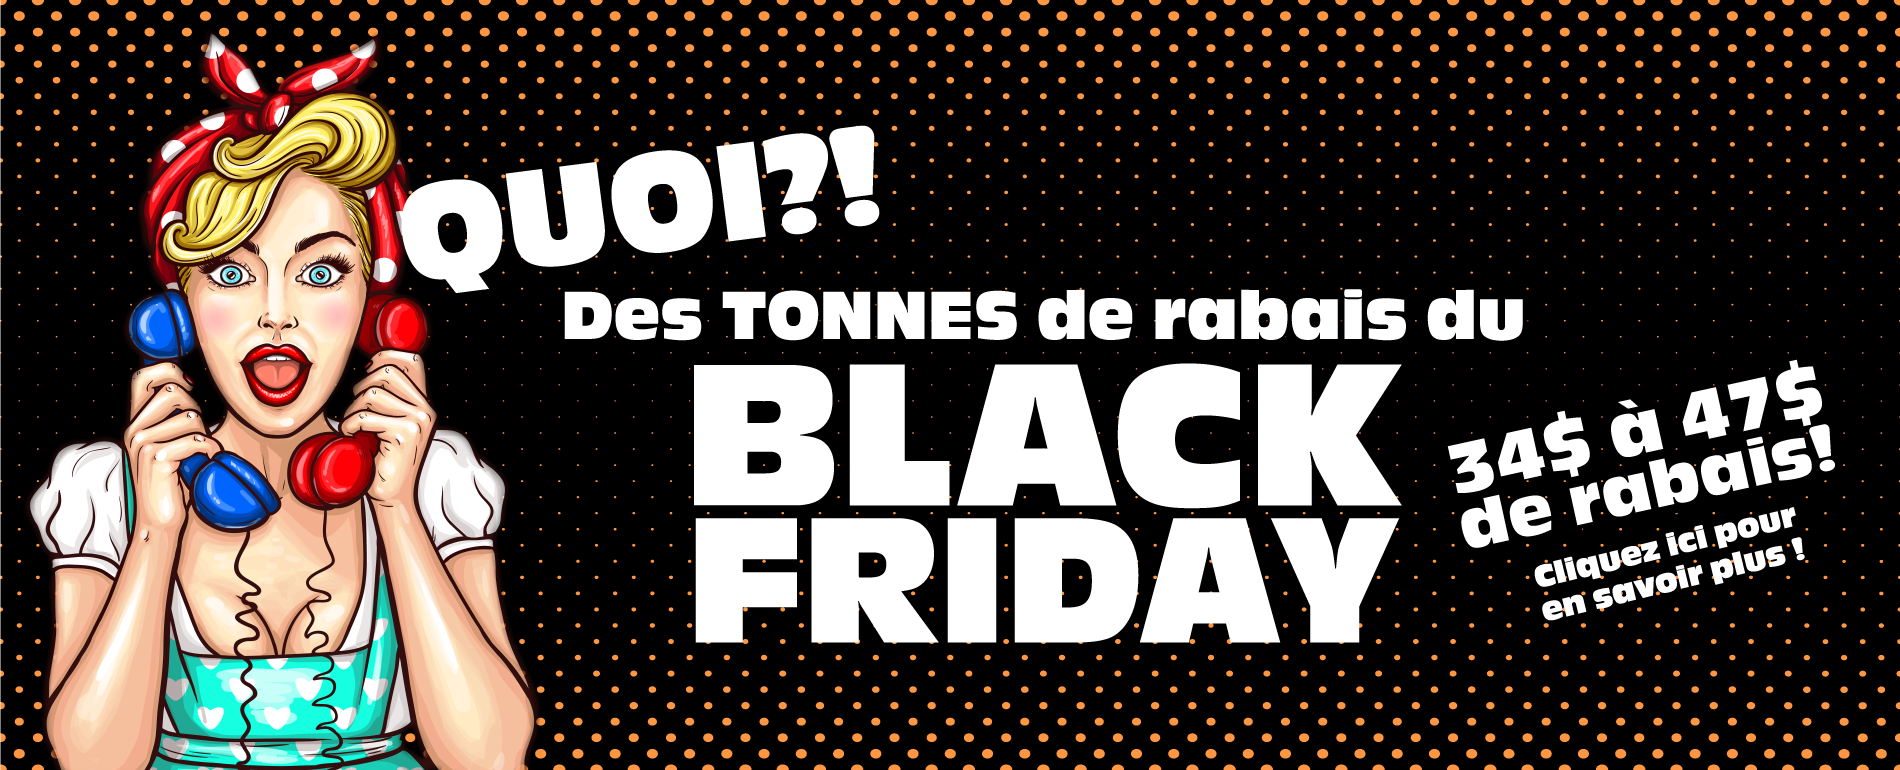 Rabais Black Friday - Lolita et Pepito !